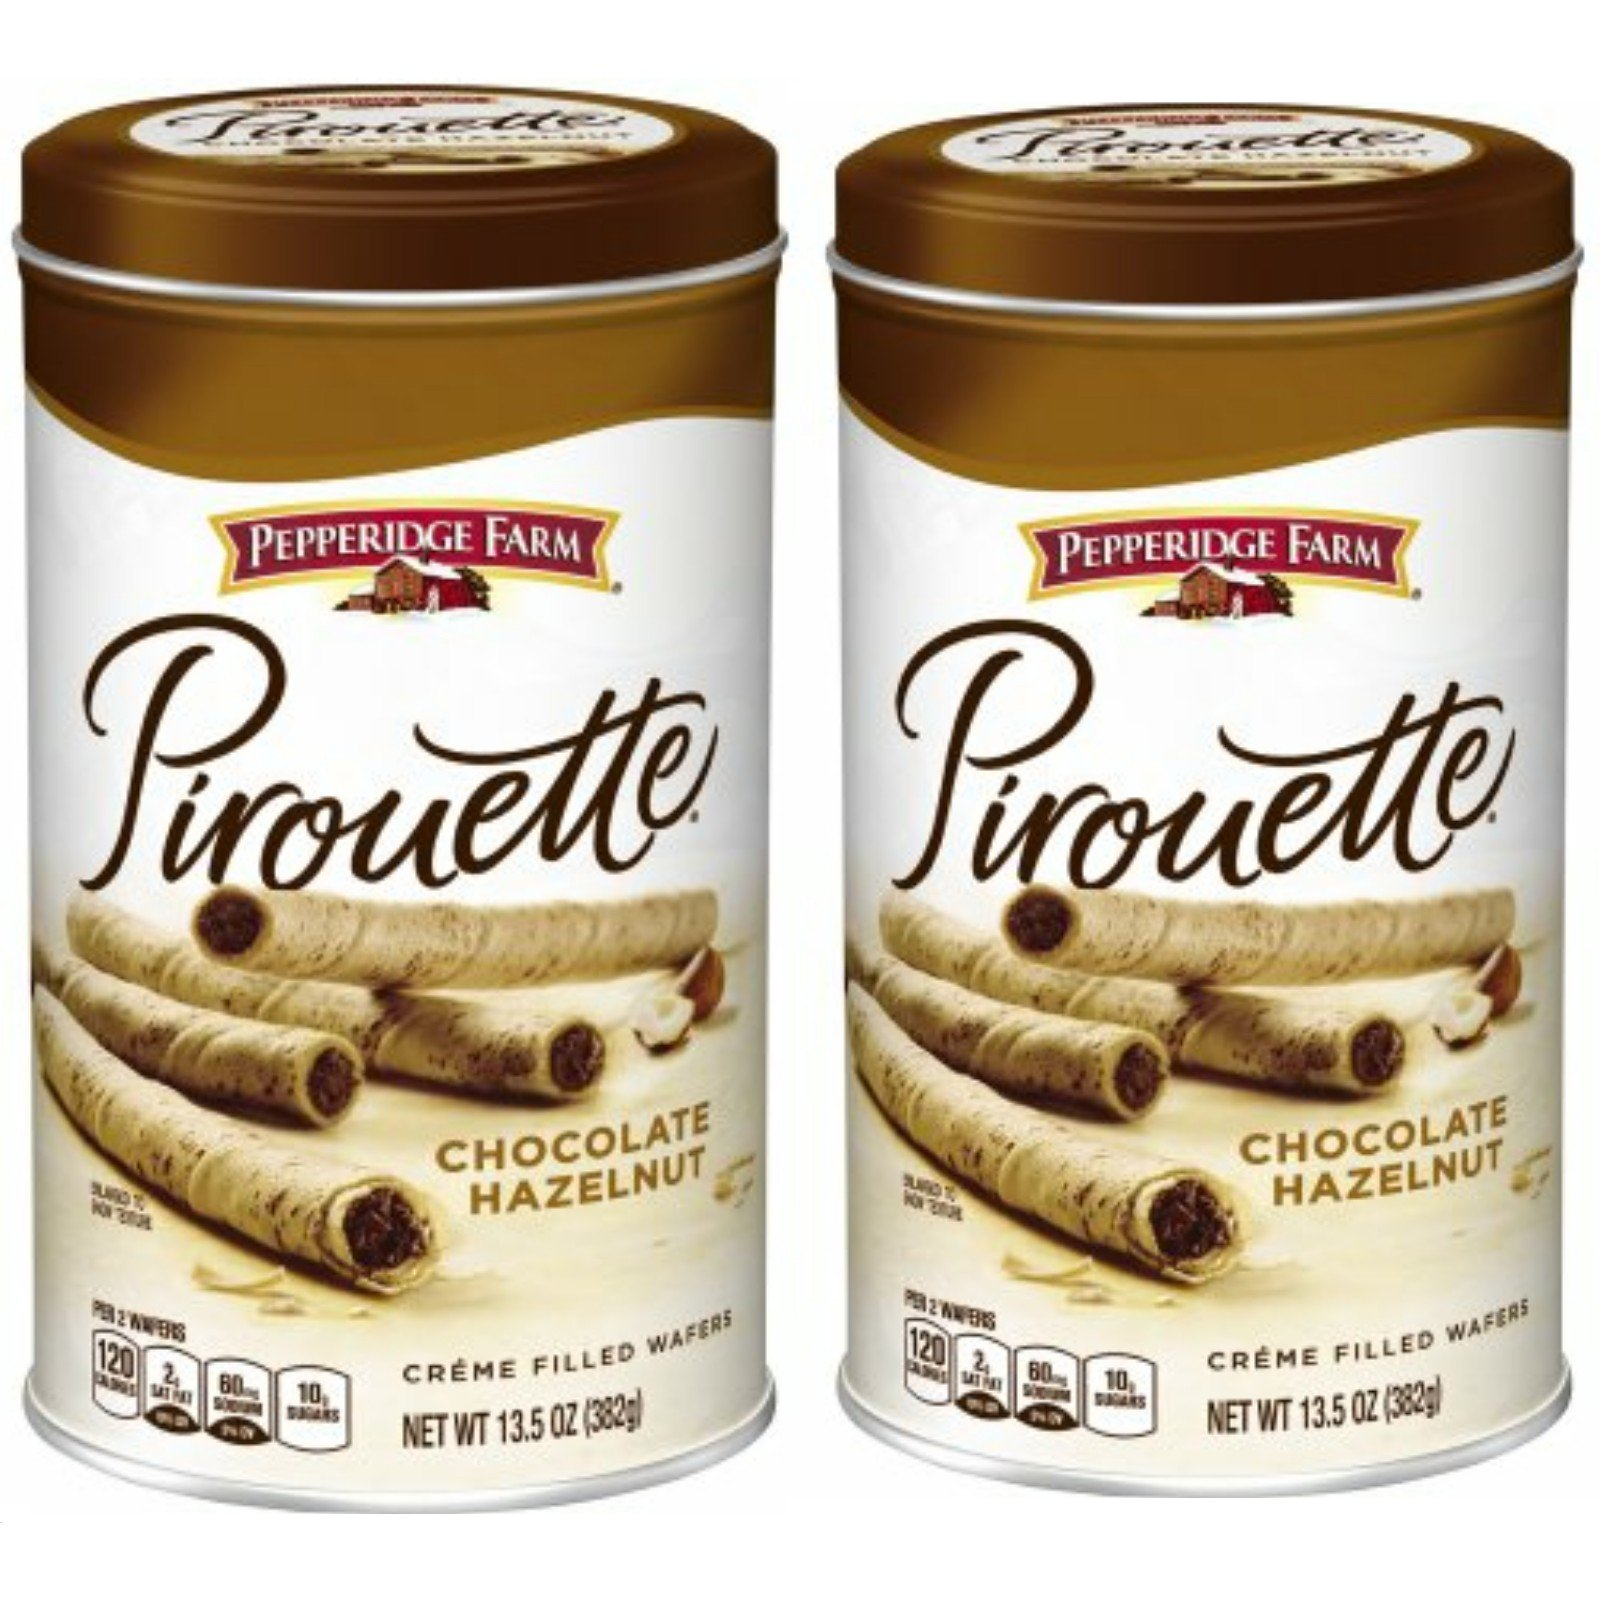 Pepperidge Farm, Pirouette Chocolate Hazelnut Crème Filled Wafers 13.5 oz. Can (Pack of 2)